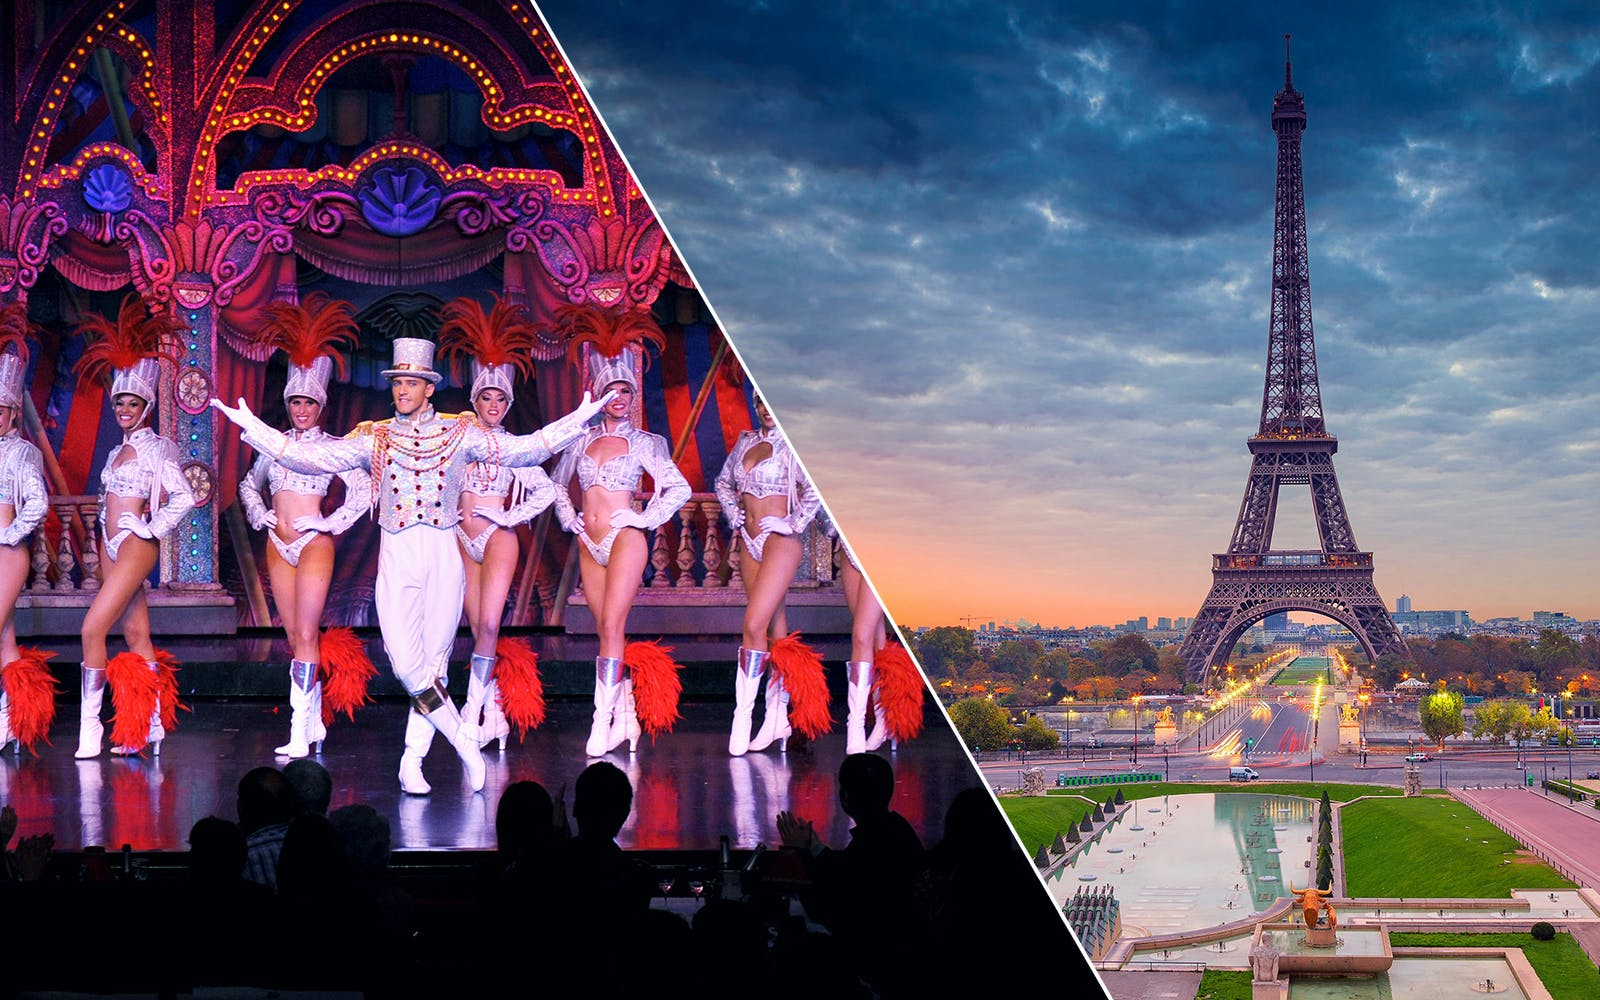 la marina dinner cruise, eiffel tower by night and moulin rouge show + transfers-1